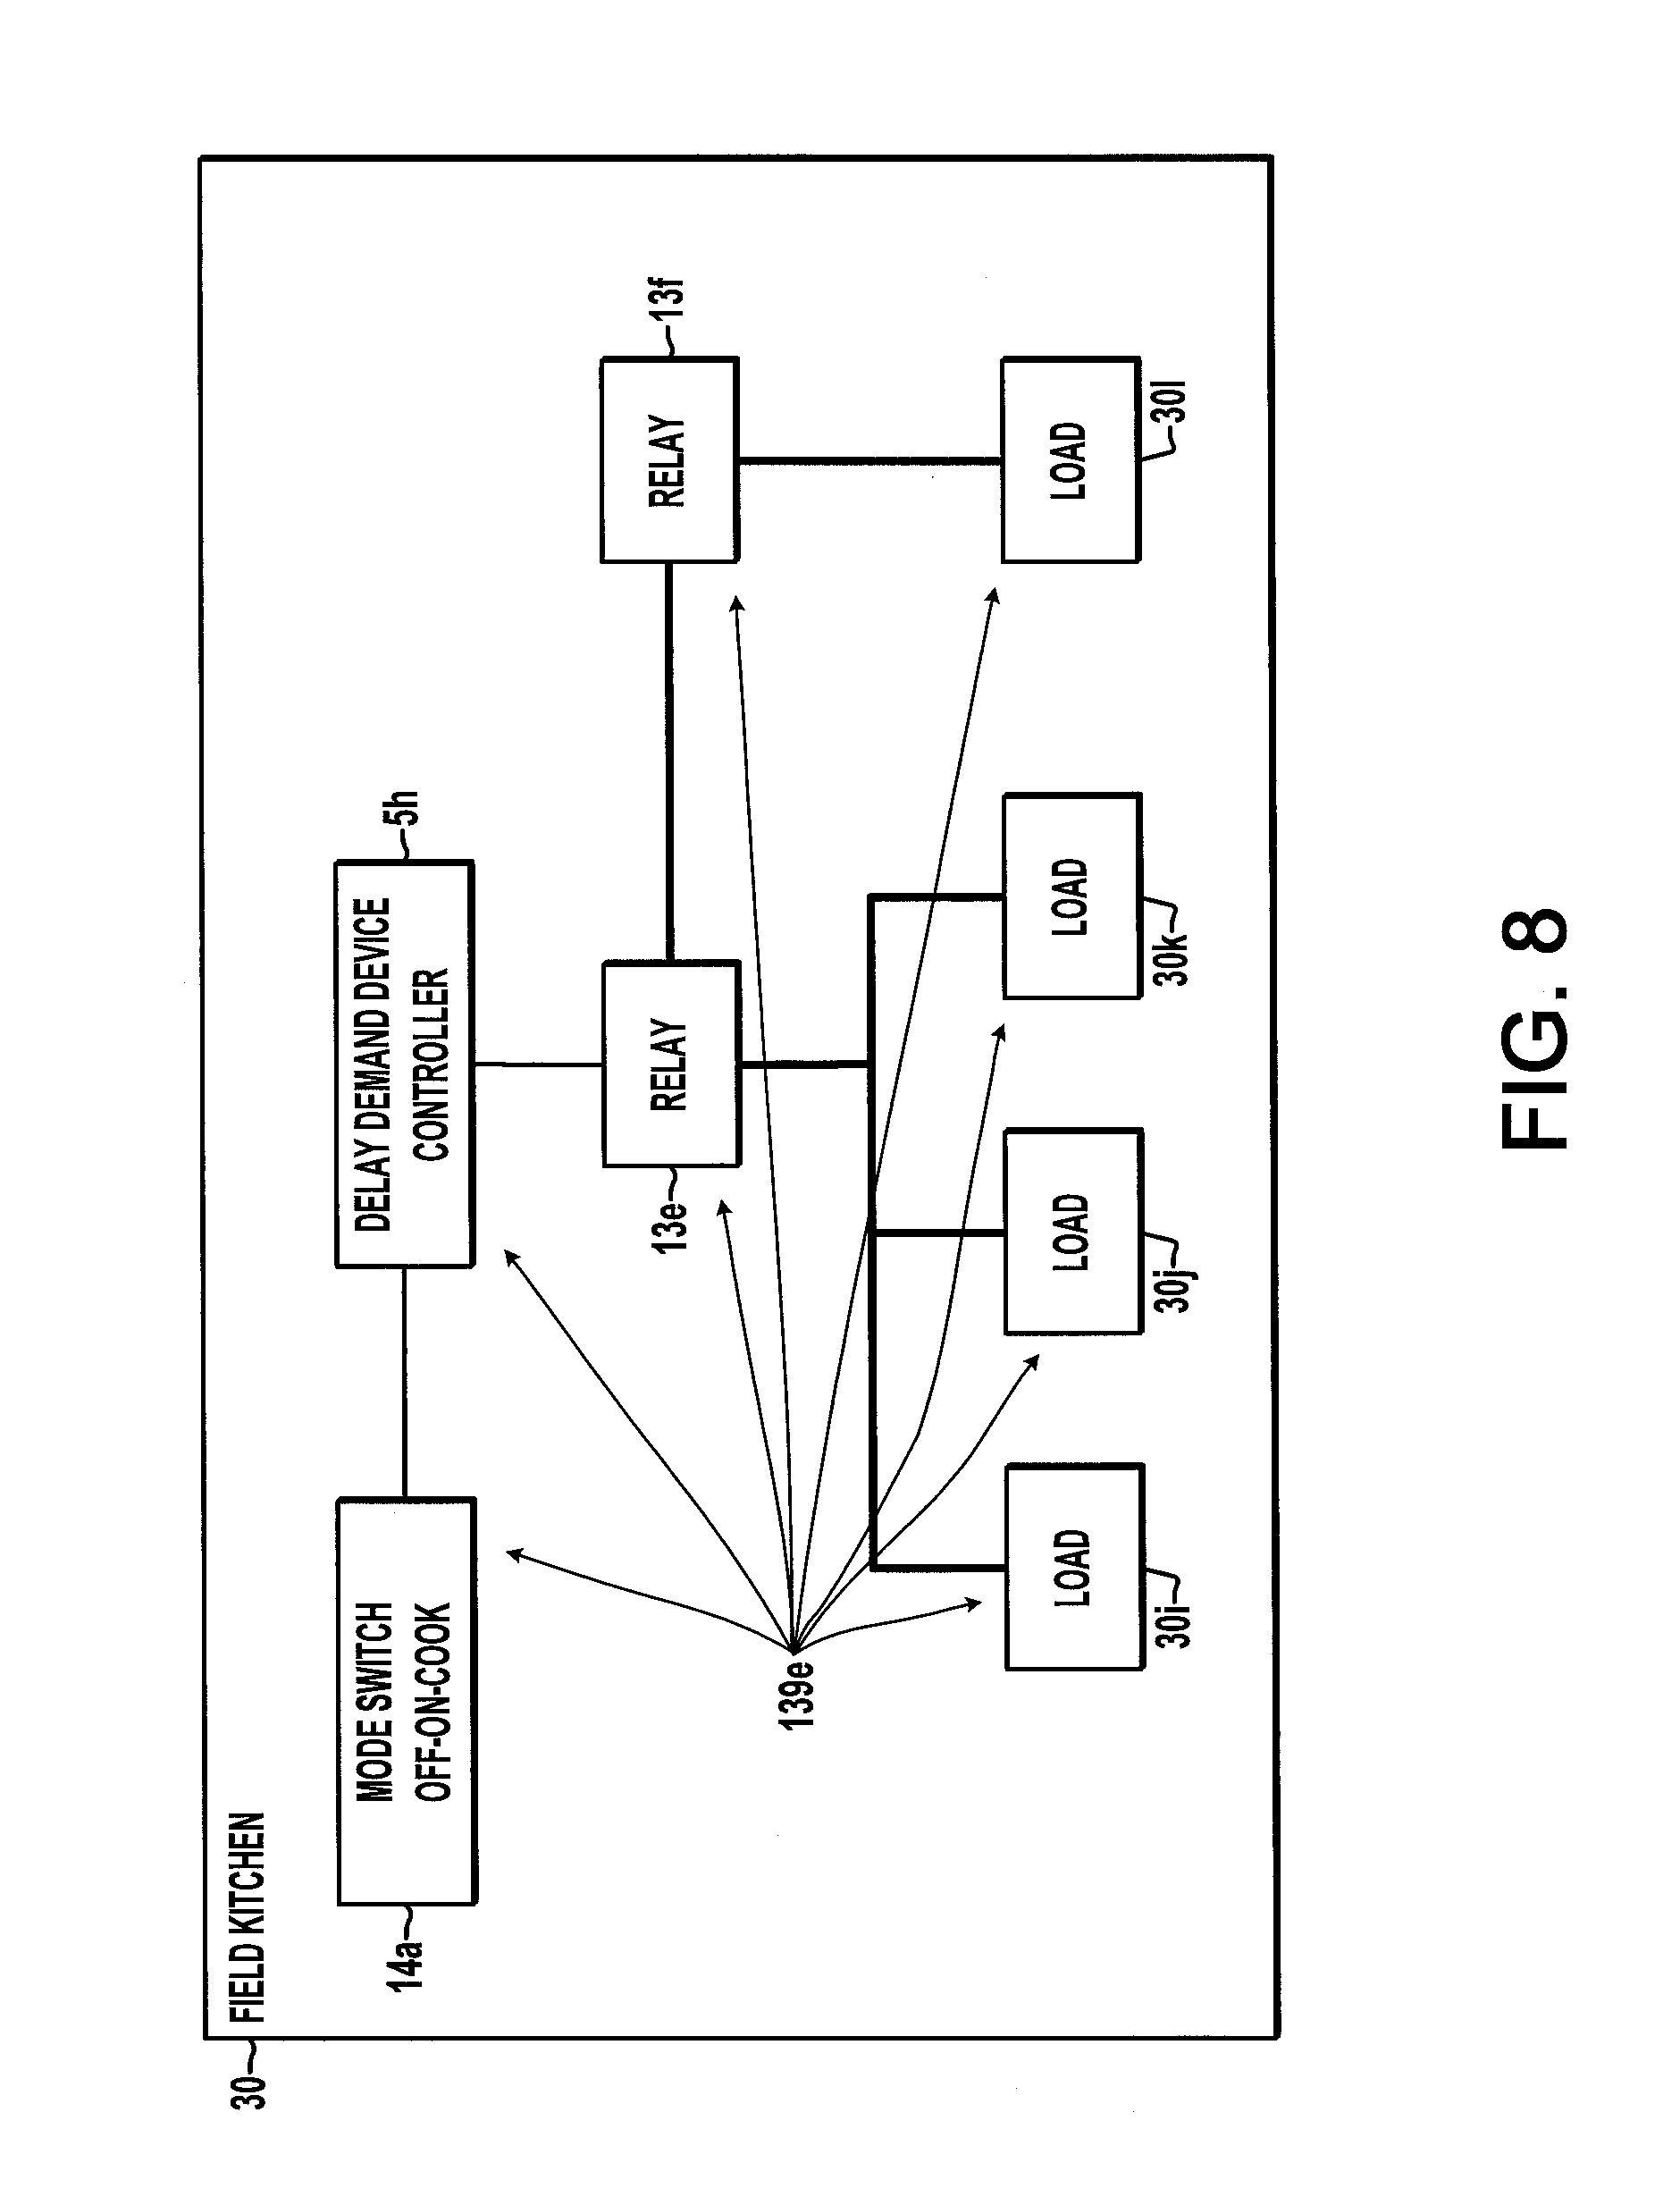 patent us8738194 - mobile micro-grid power system